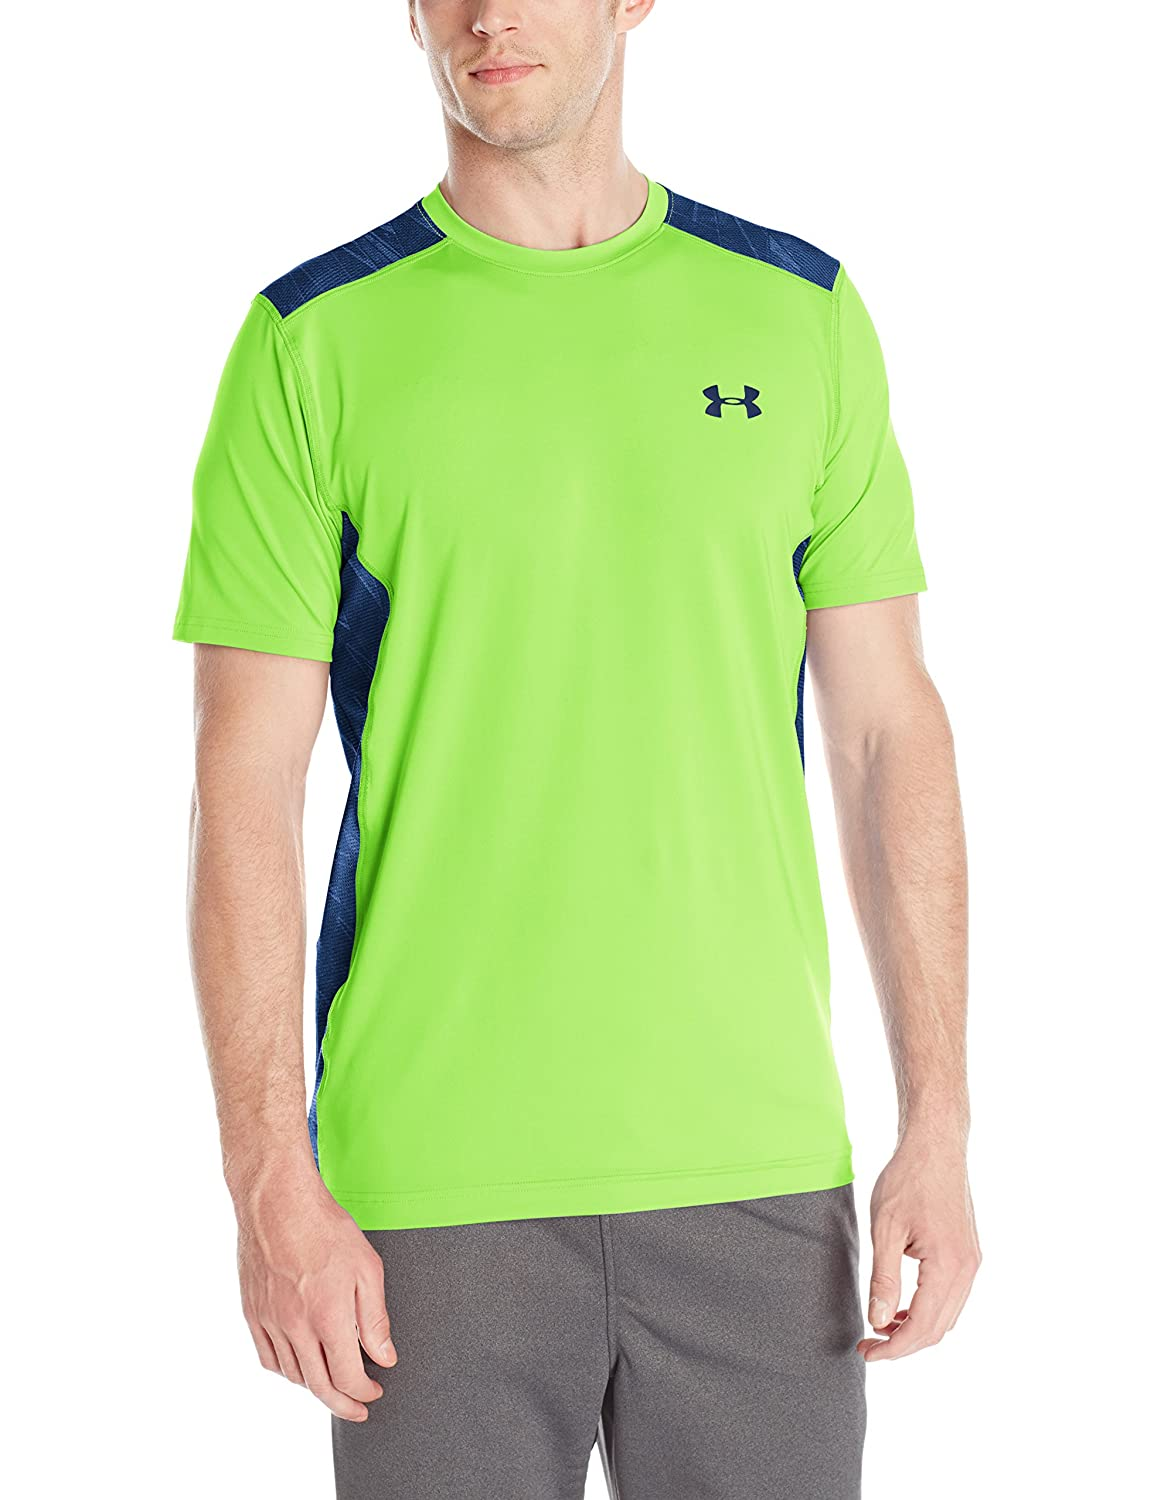 (アンダーアーマー) UNDER ARMOUR ヒットヒートギアSS(トレーニング/Tシャツ/MEN)[1257466] B00YQL2WK0 XXXX-Large|Fuel Green/Blackout Navy Fuel Green/Blackout Navy XXXX-Large